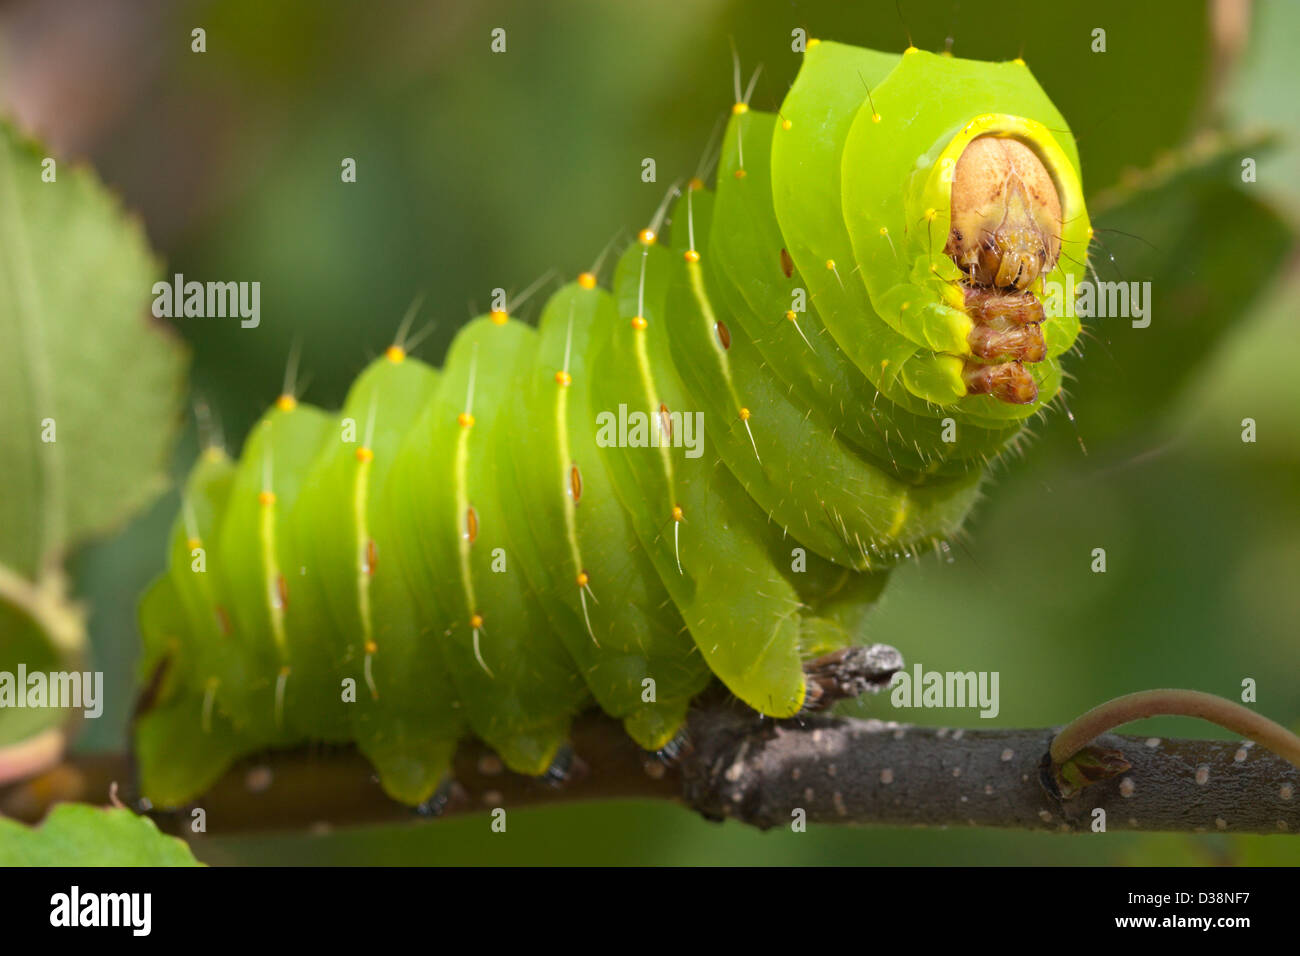 Insect Luna Moth Caterpillar Grub Green Stock Photo  53667579